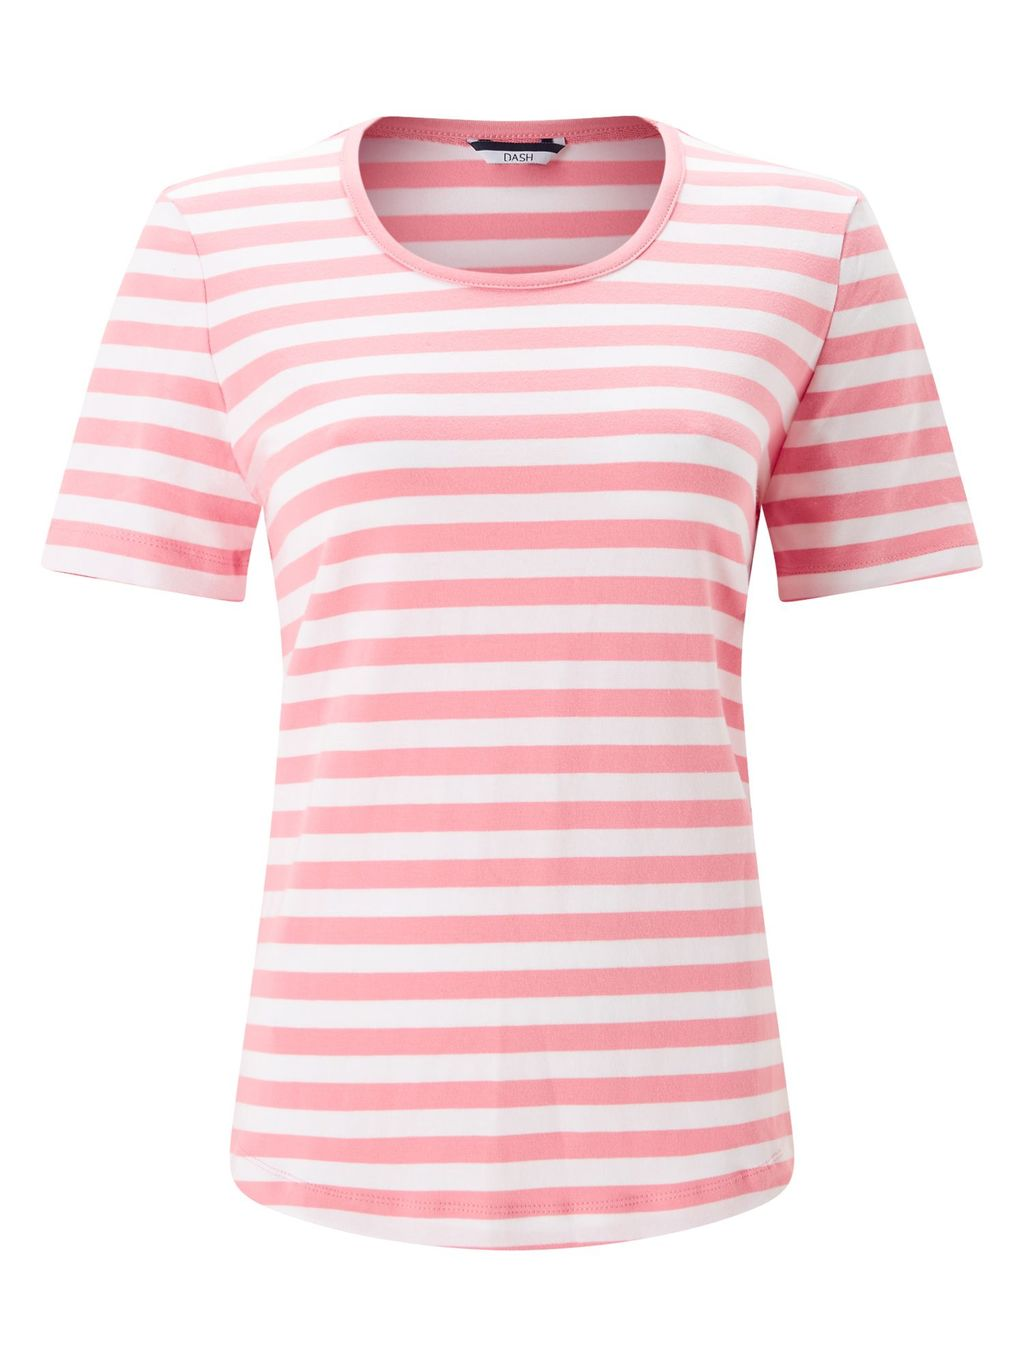 Pink Stripe Scoop T Shirt, Navy - pattern: horizontal stripes; style: t-shirt; secondary colour: white; predominant colour: pink; occasions: casual; length: standard; fibres: cotton - stretch; fit: body skimming; neckline: crew; sleeve length: short sleeve; sleeve style: standard; texture group: jersey - clingy; pattern type: fabric; pattern size: standard; season: s/s 2016; wardrobe: highlight